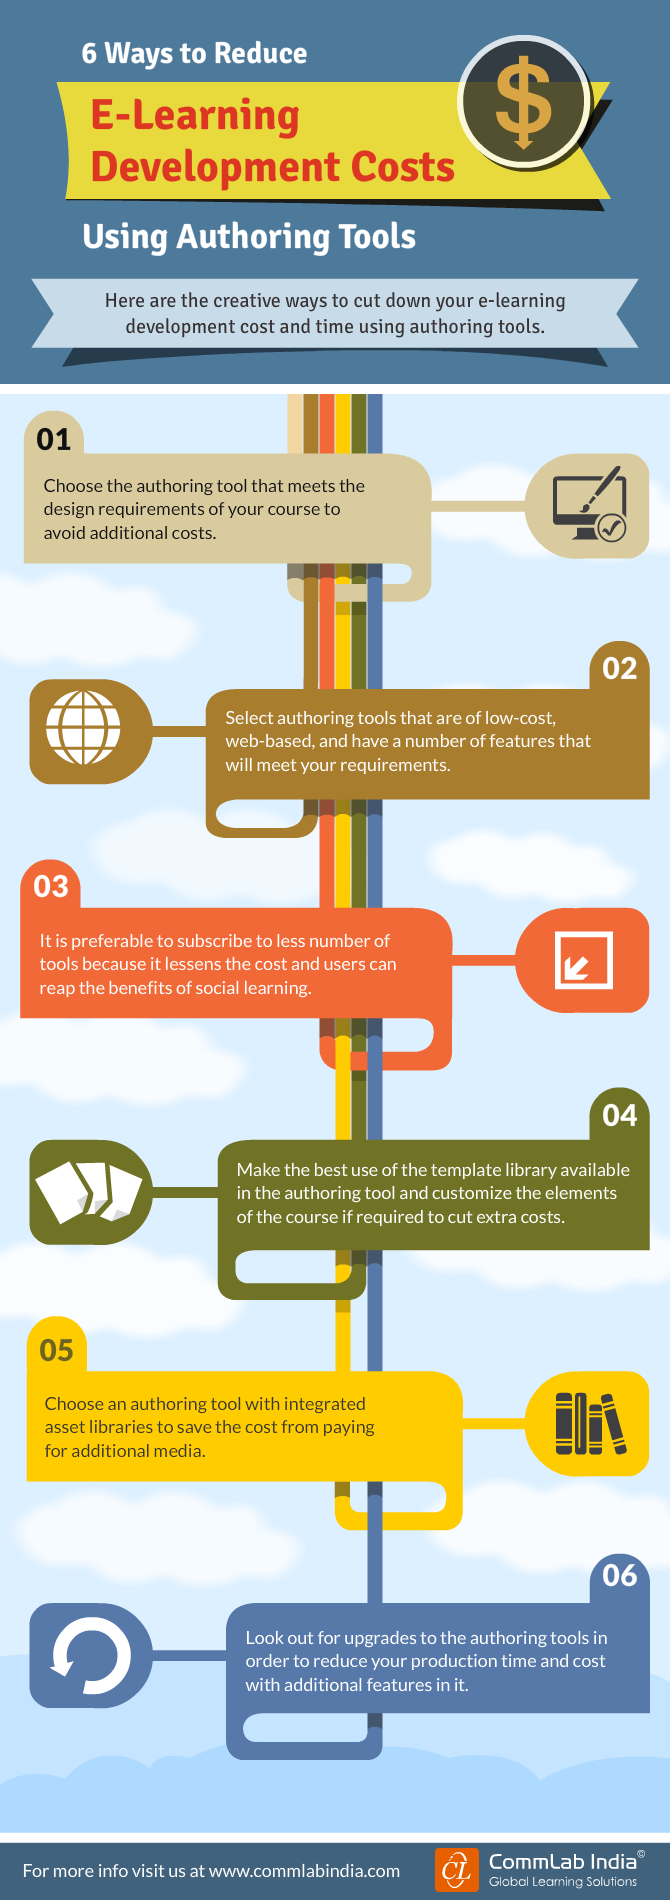 6 Ways to Reduce E-Learning Development Costs Using Authoring Tools [Infographic]